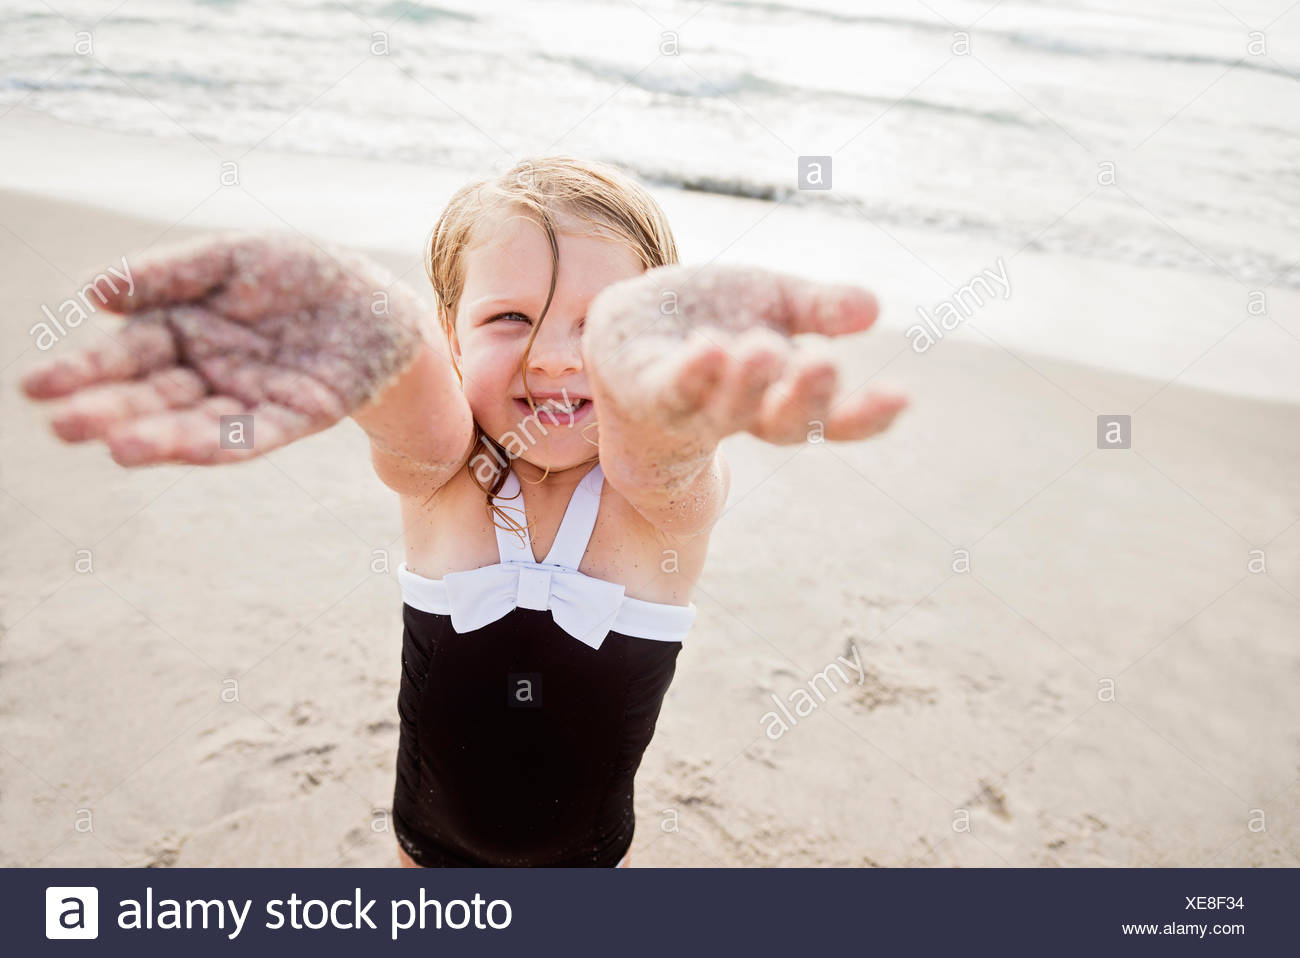 Girl (4-5) standing on beach showing her dirty hands - Stock Image